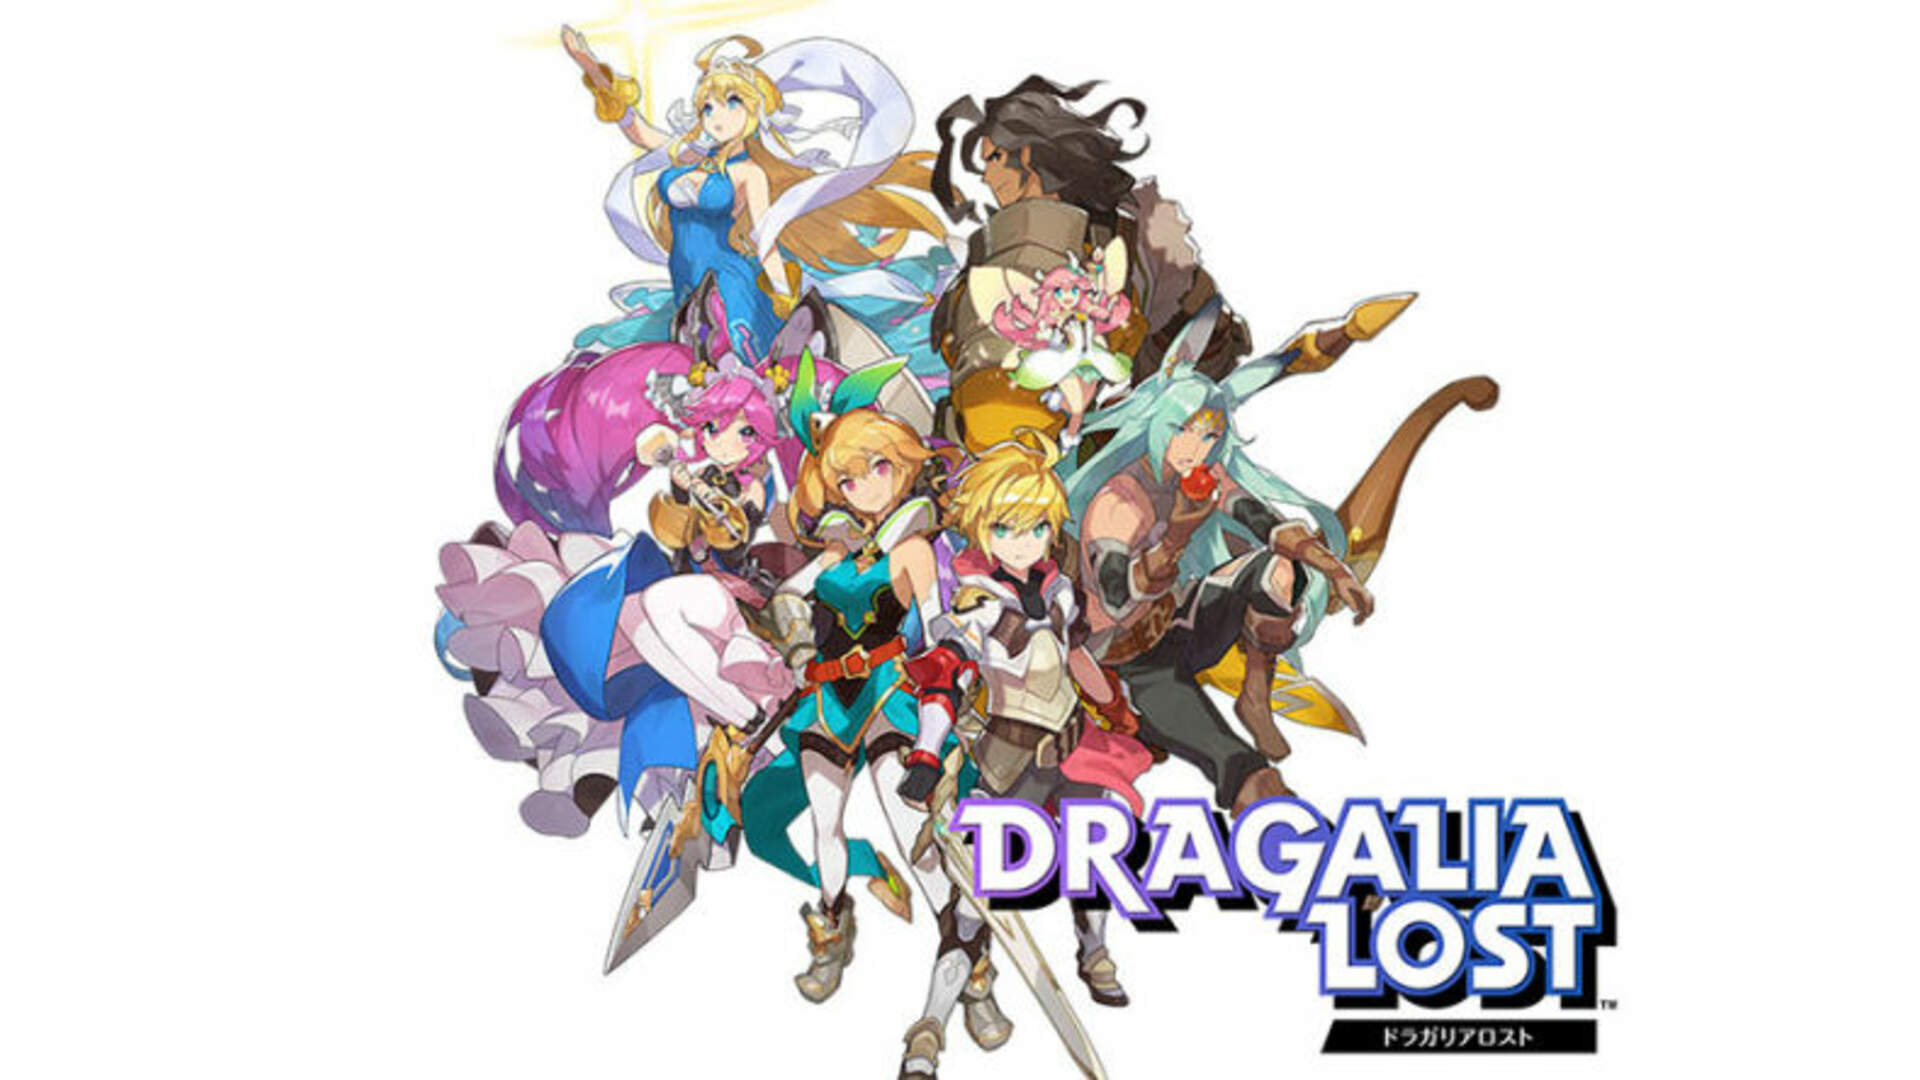 Nintendo and Granblue Fantasy Developers are Working on an Original RPG for Mobile